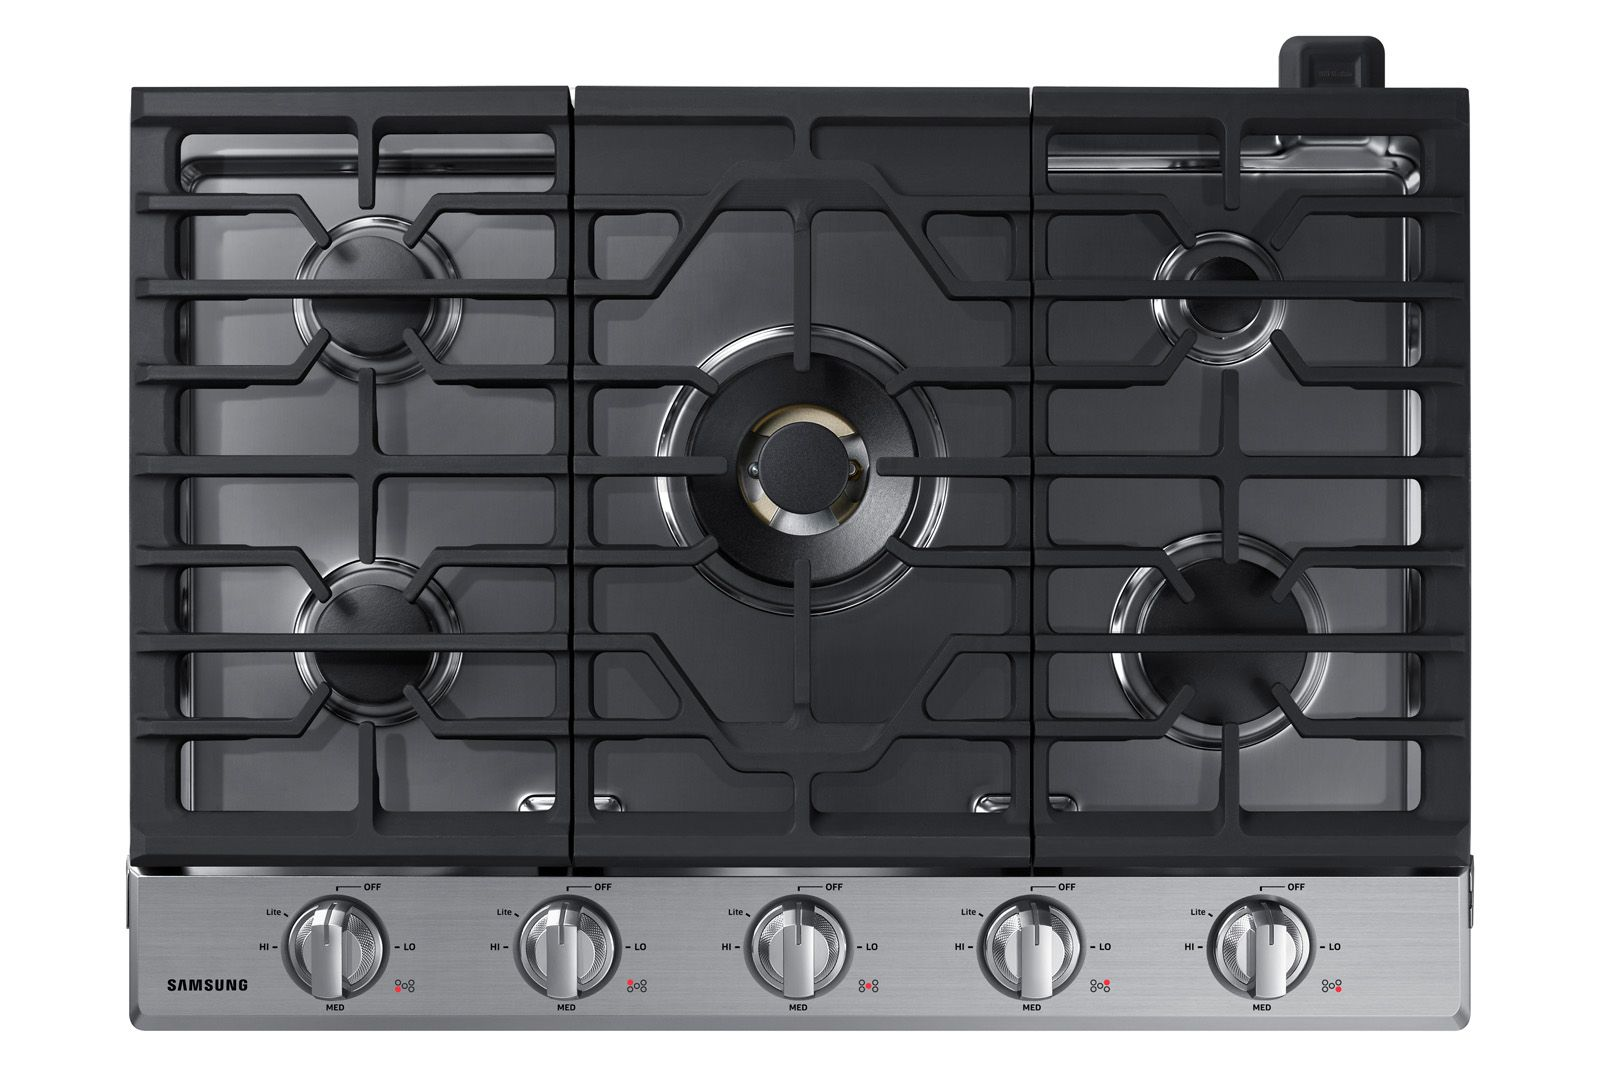 30 Inch Gas Cooktop With 22k Btu Dual Power Burner In Stainless Steel Cooktop Na30n7755ts Aa Samsung Us Gas Cooktop Cooktop Stainless Steel Cooktop